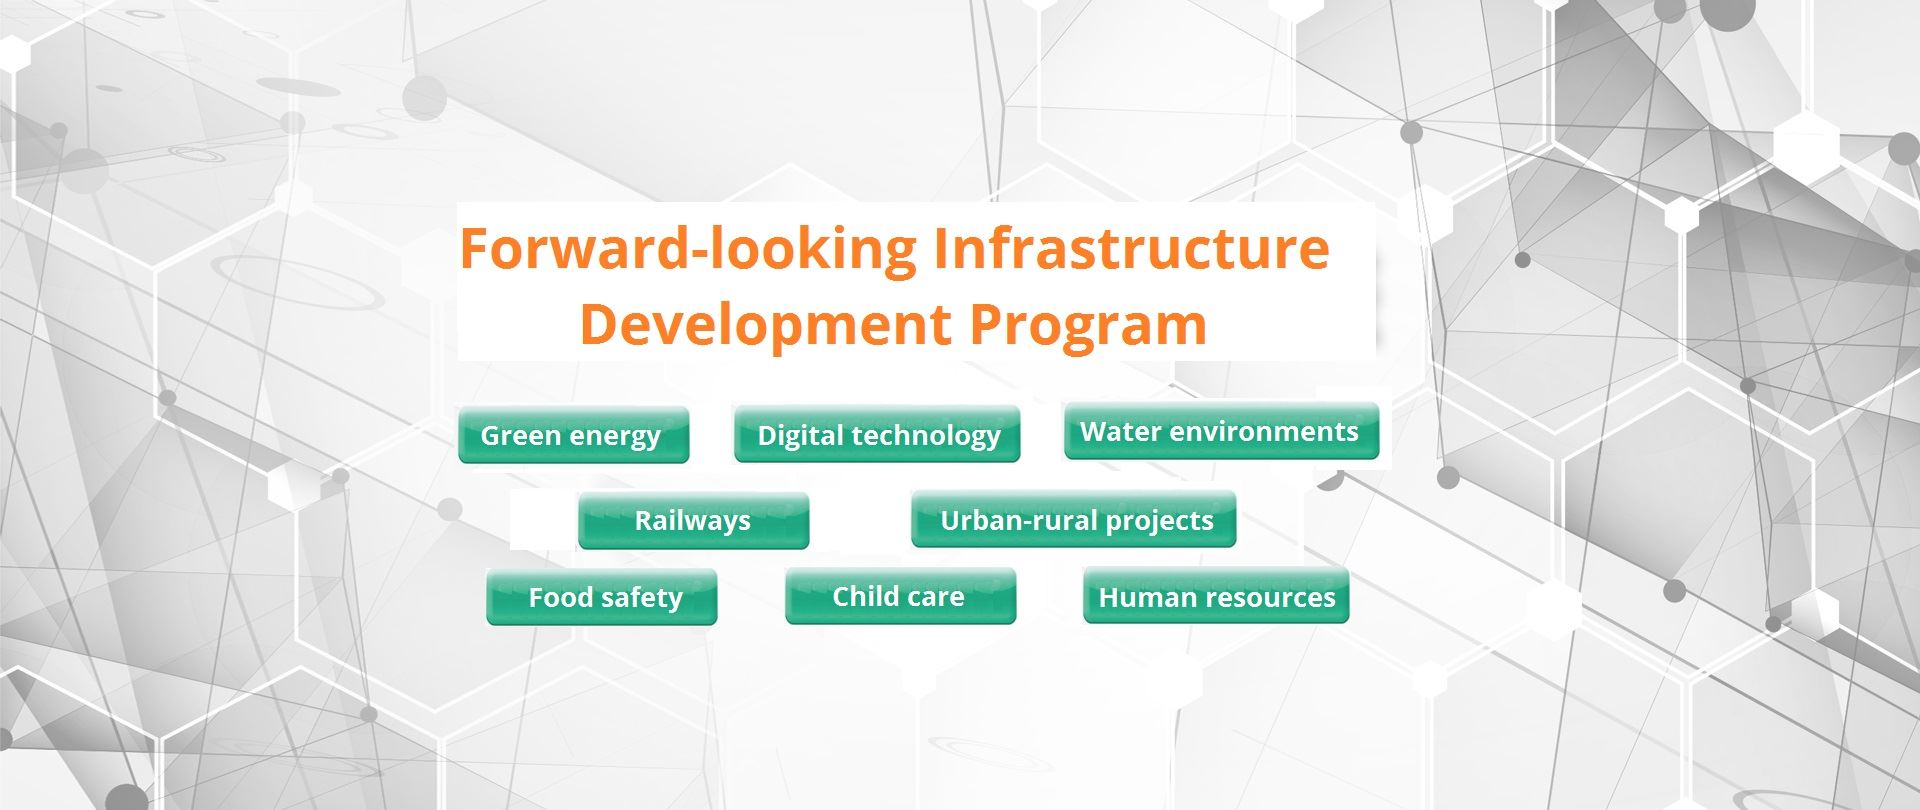 In an ongoing effort to build infrastructure for national development in the next 30 years, the government is actively making a comprehensive plan to expand infrastructure investme